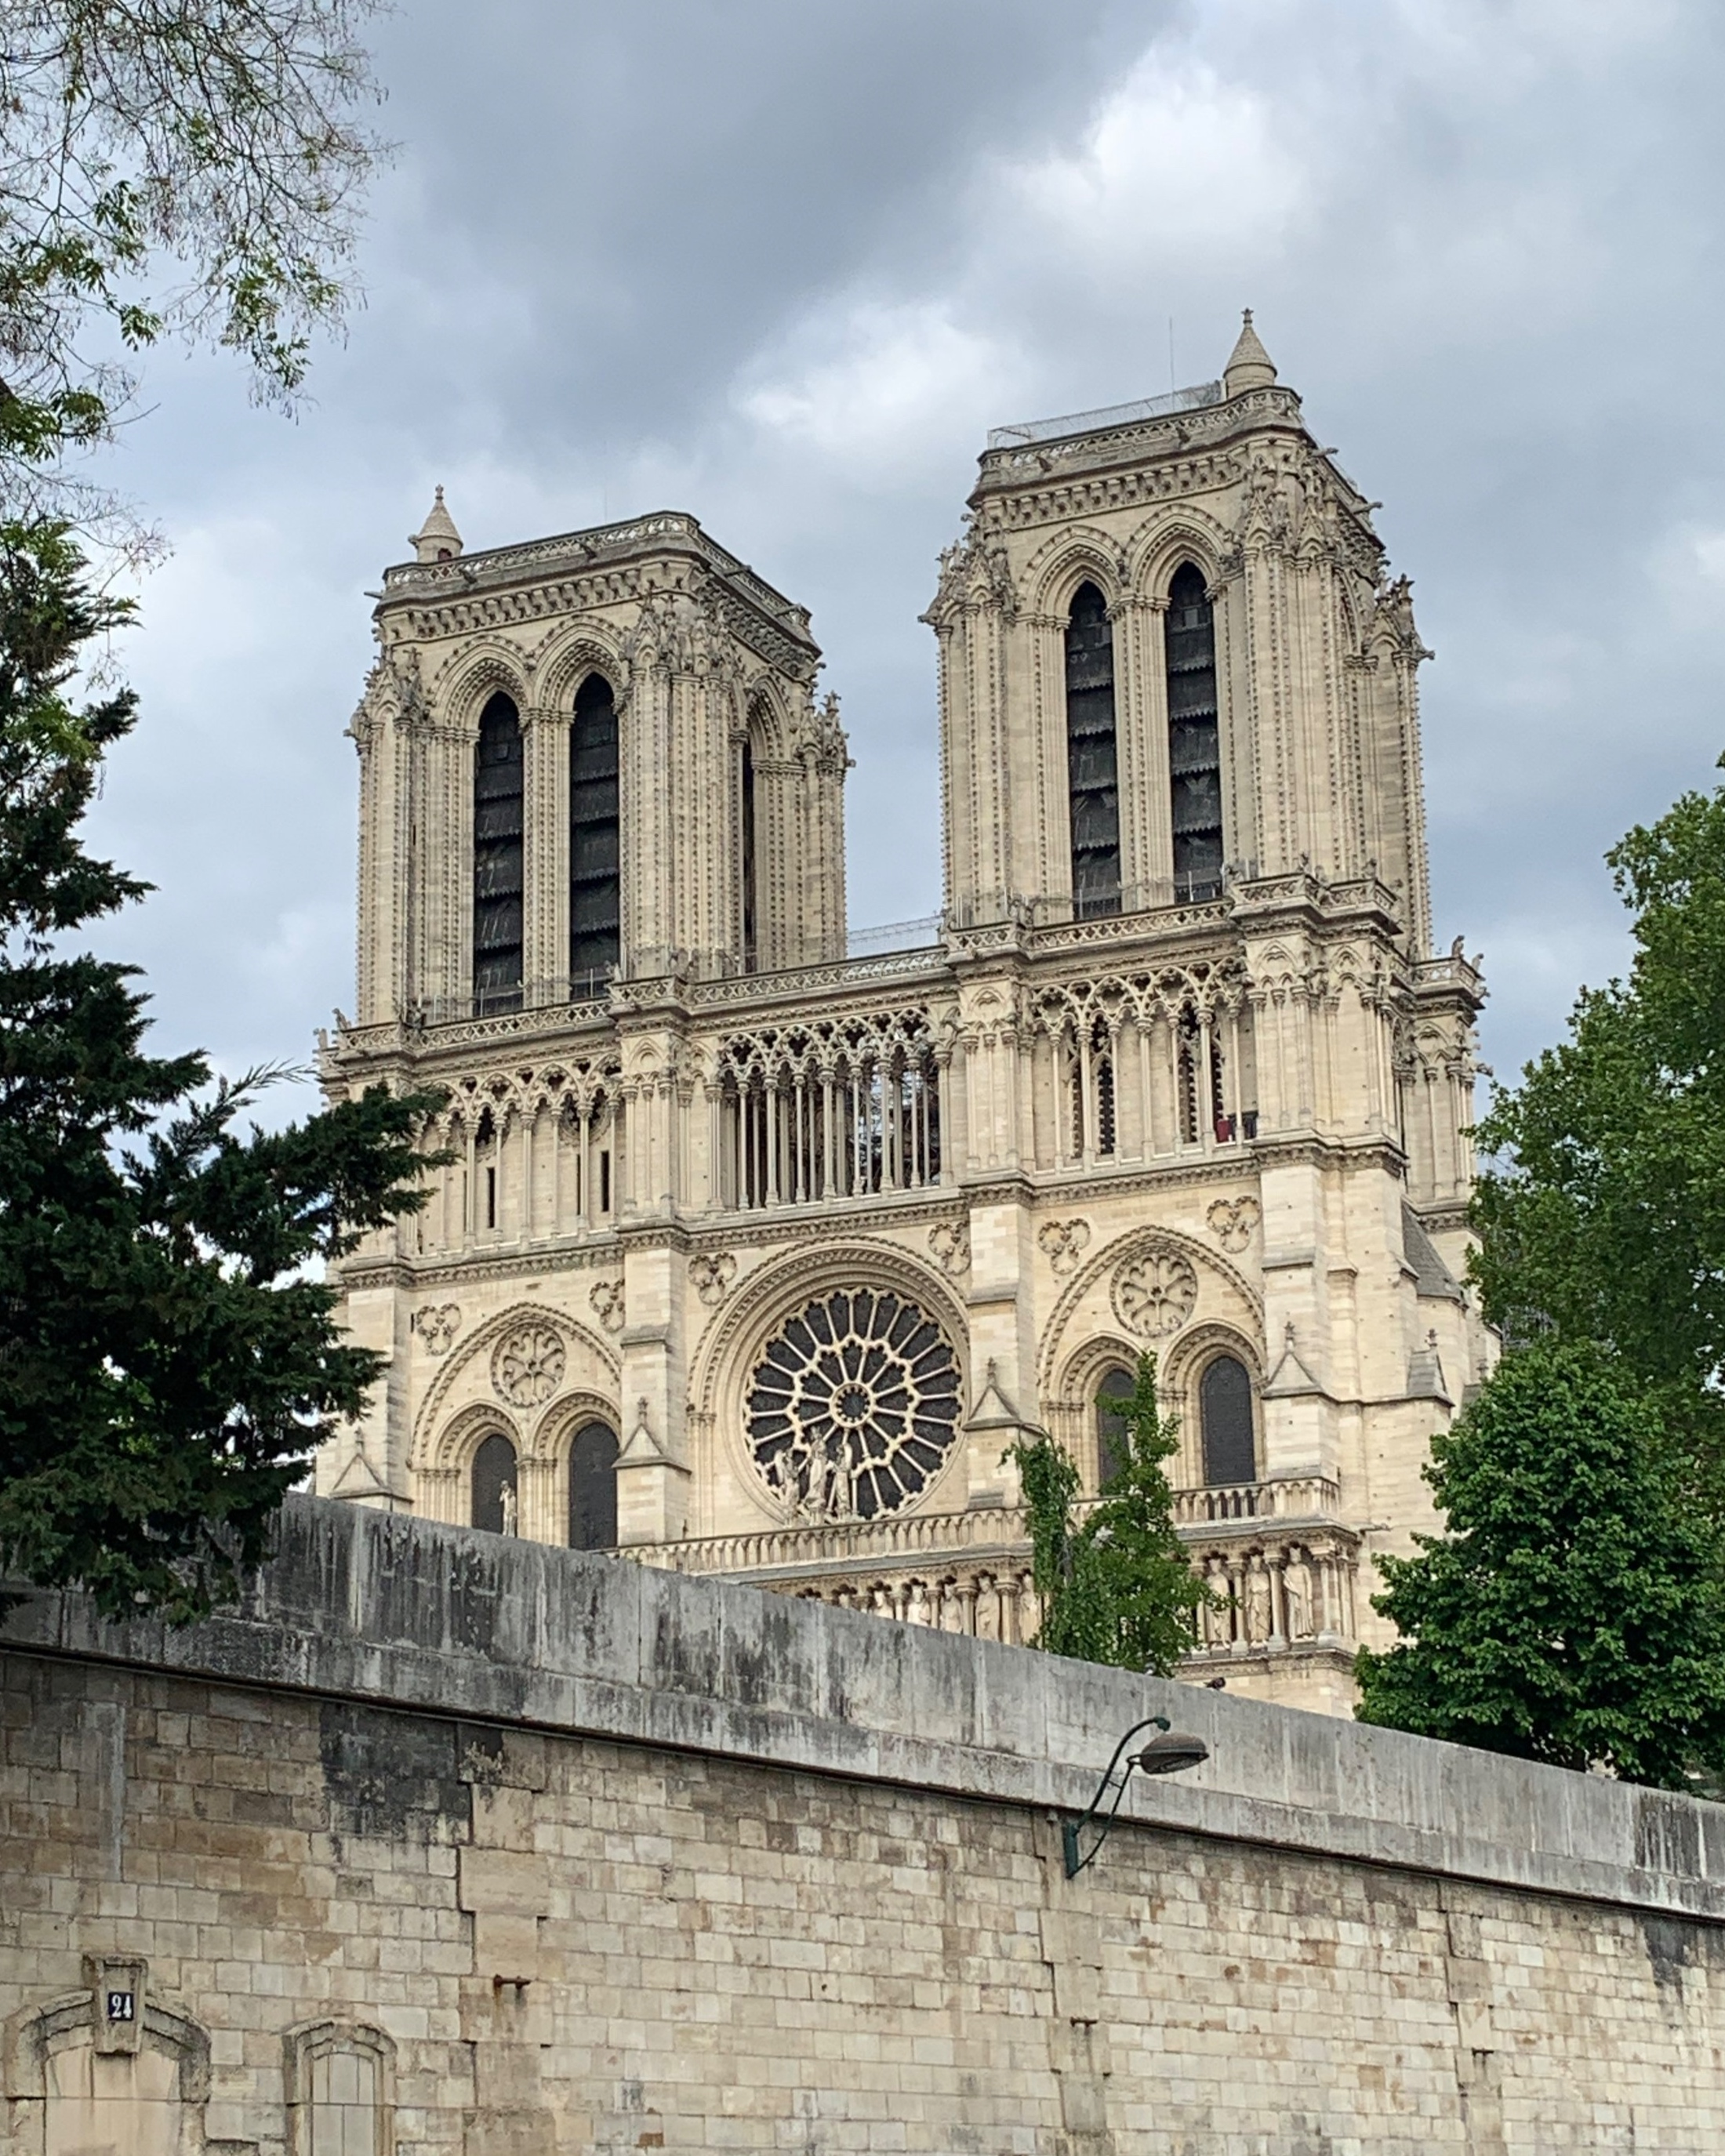 The closest we got to Notre Dame cathedral.